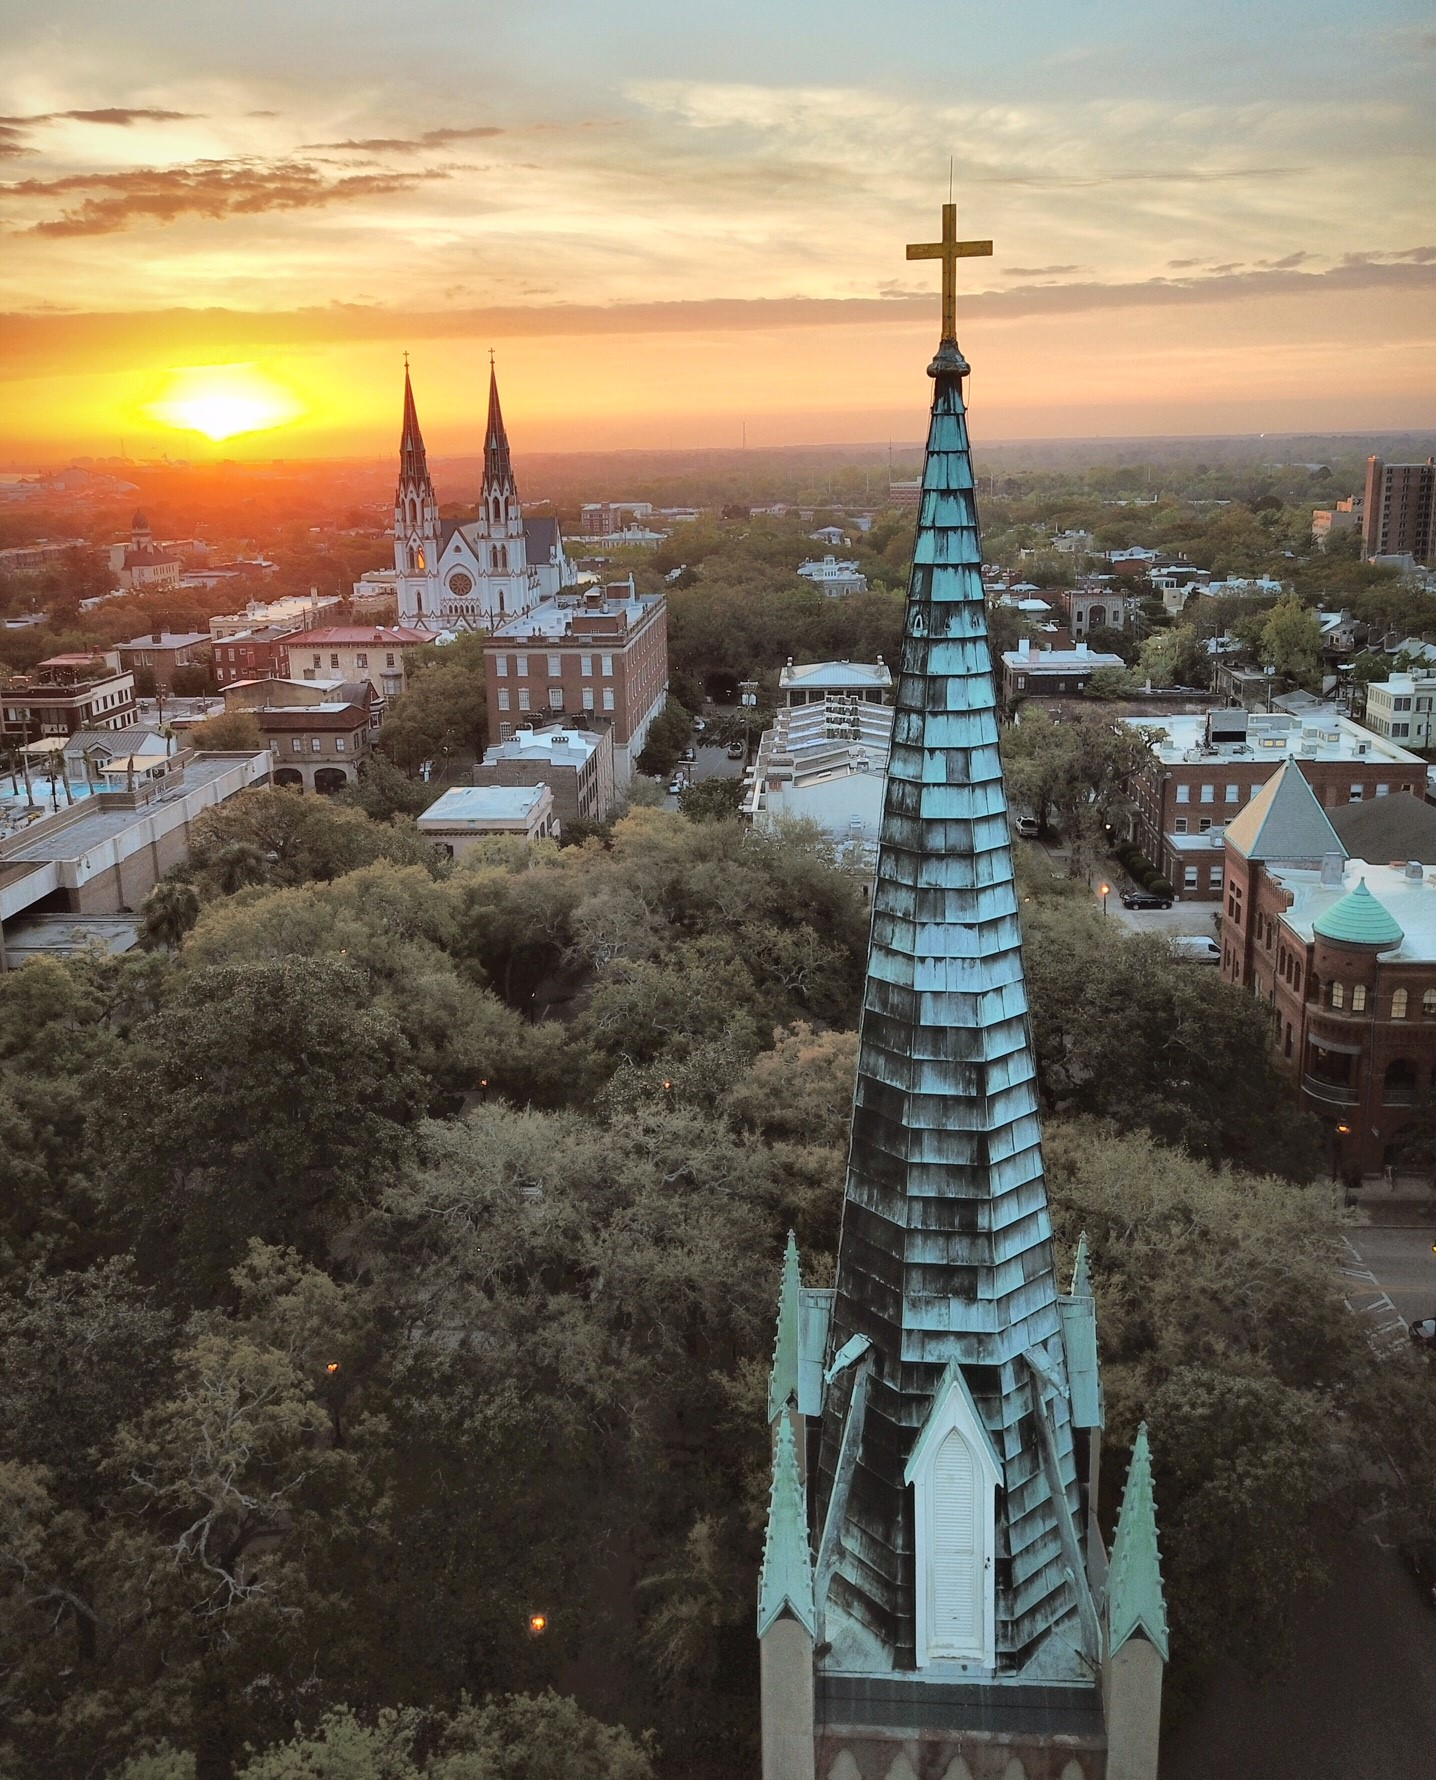 St. John's Church - Savannah, GA